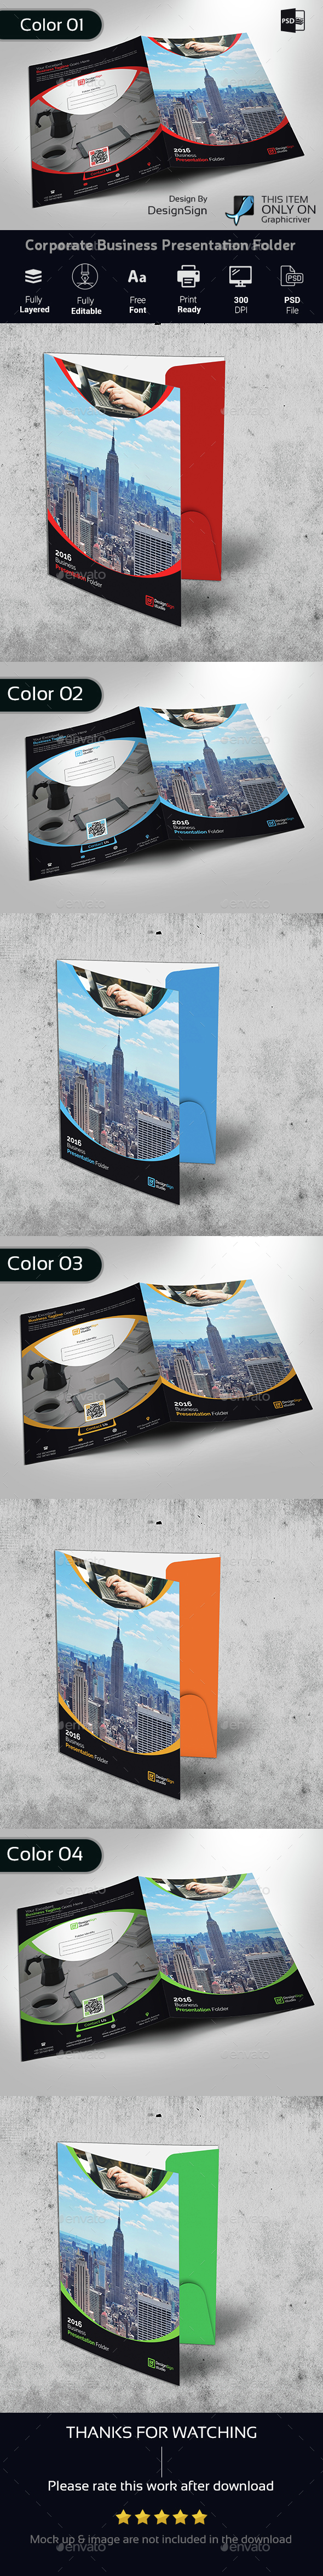 Corporate Business Presentation Folder - Stationery Print Templates